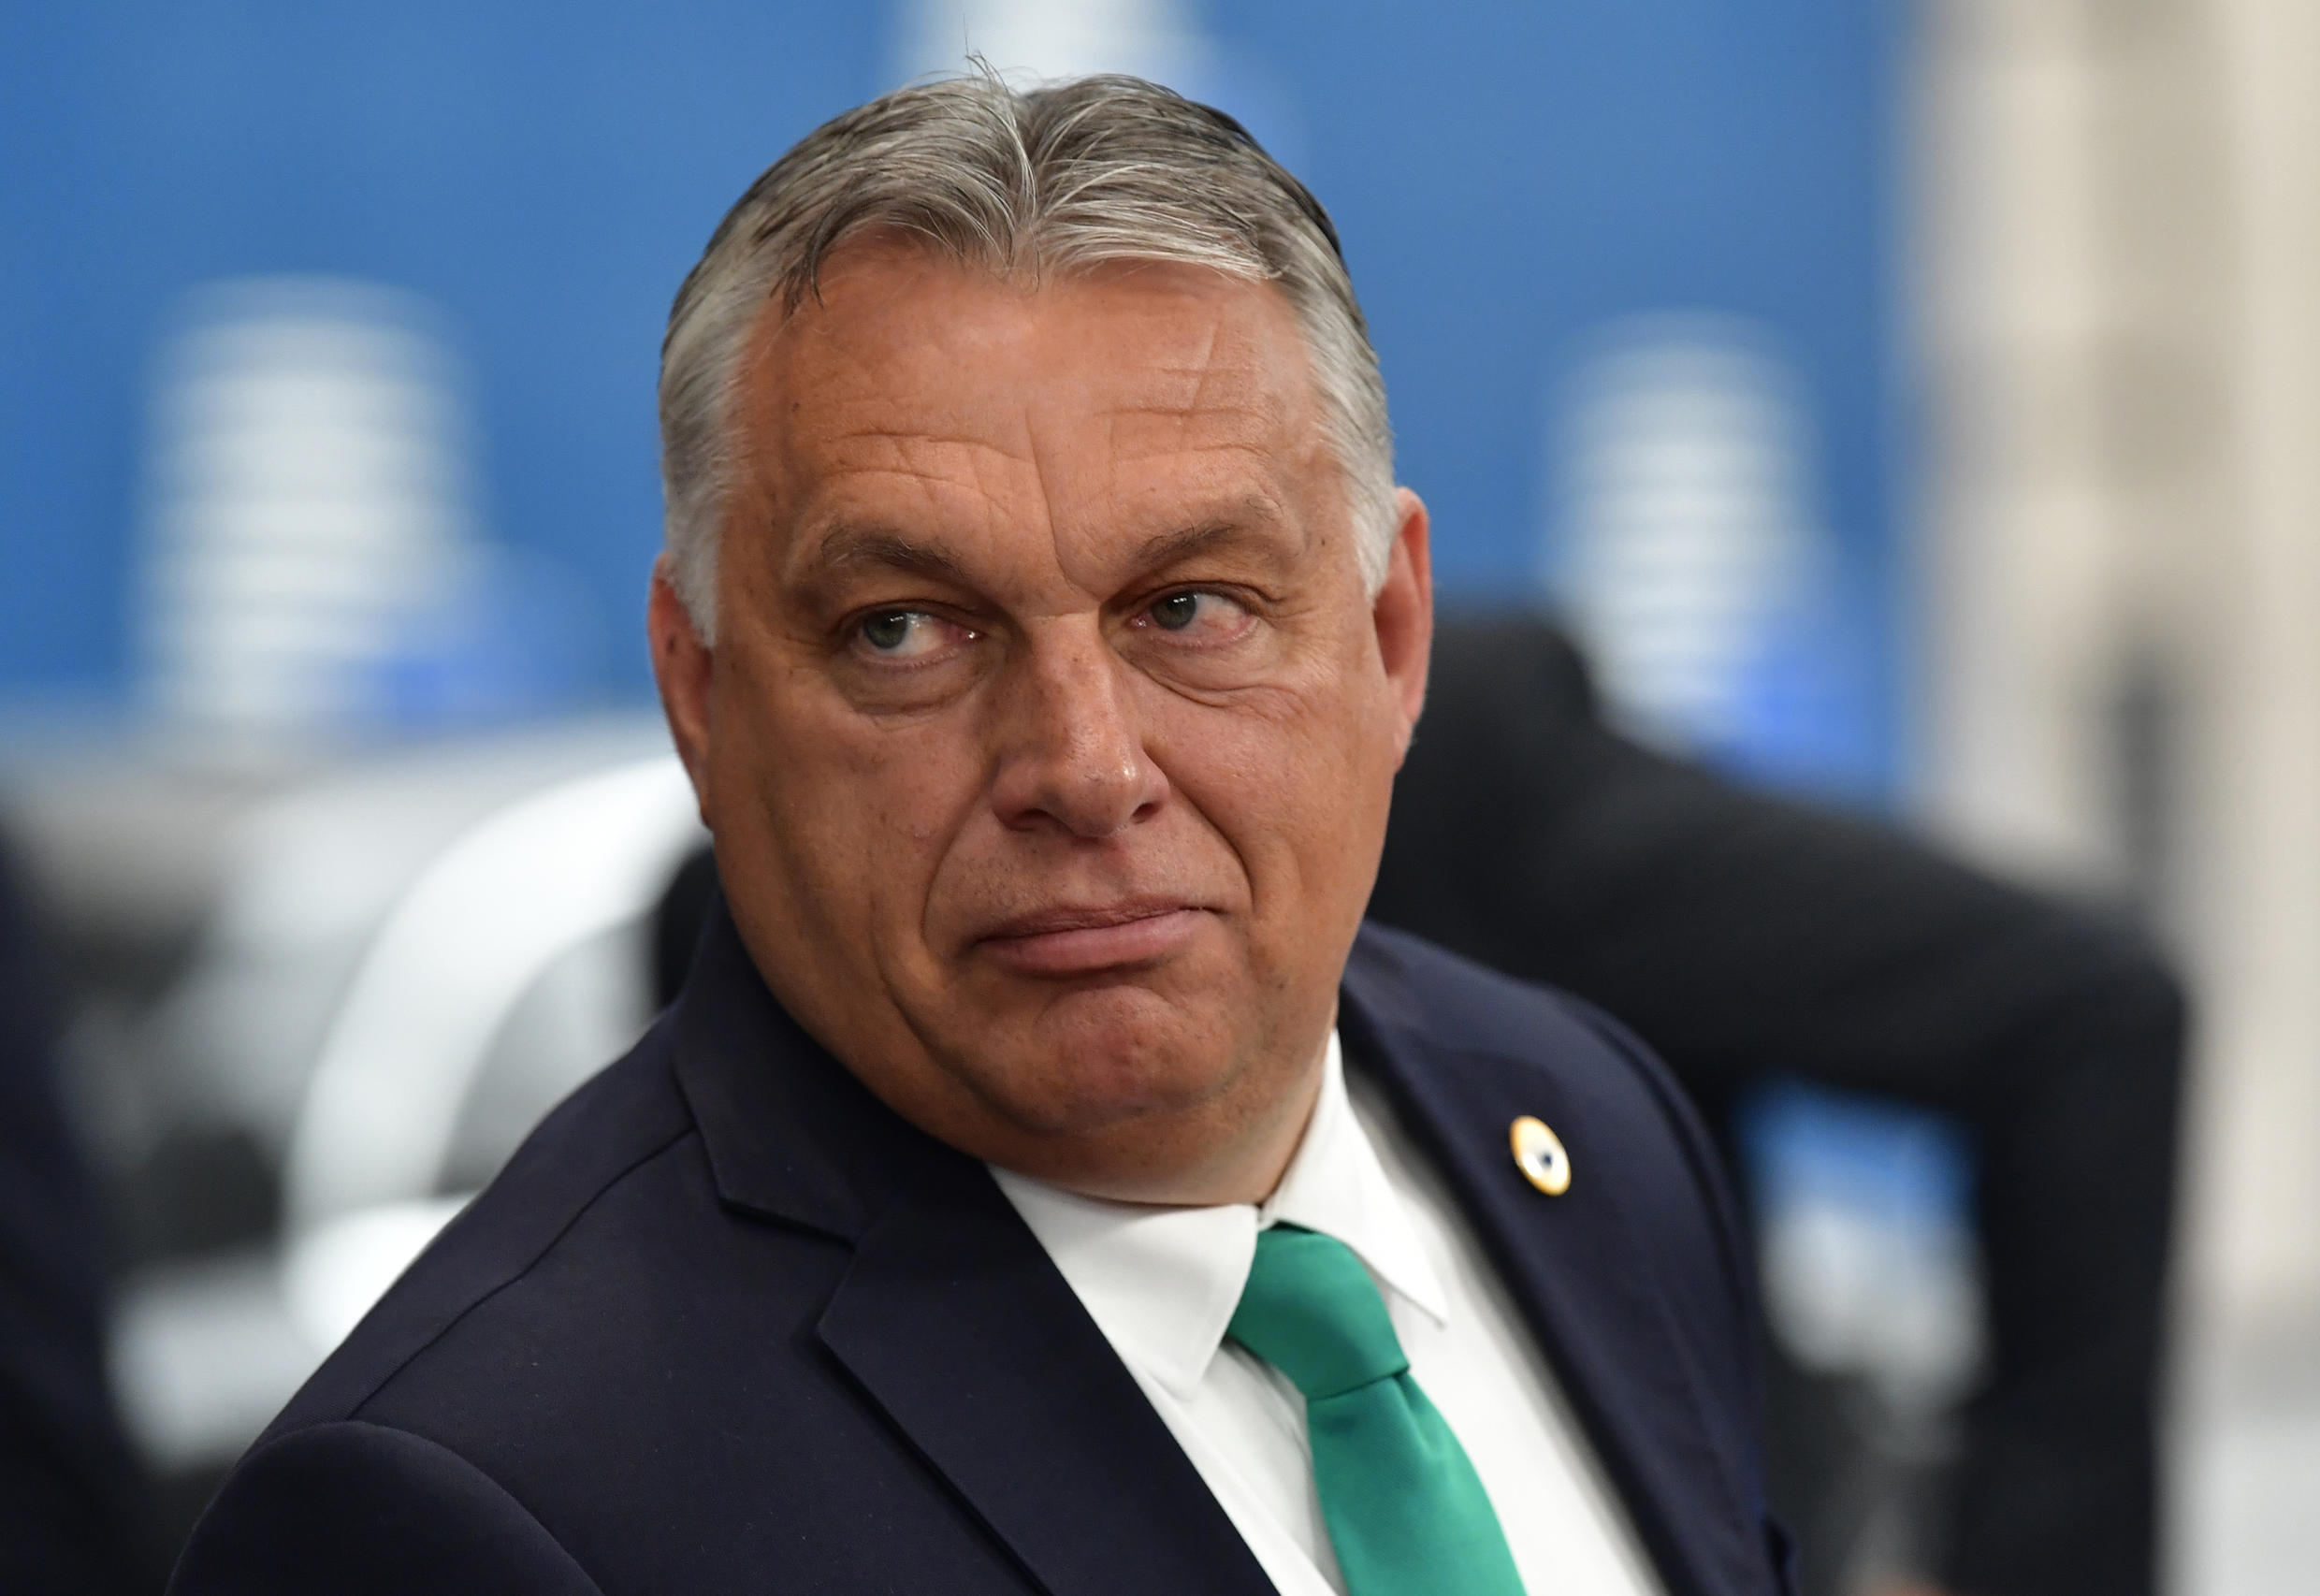 Hungary's Prime Minister Viktor Orban (pictured July 2020) has won three consecutive landslides since 2010, partly due to election rule changes he oversaw